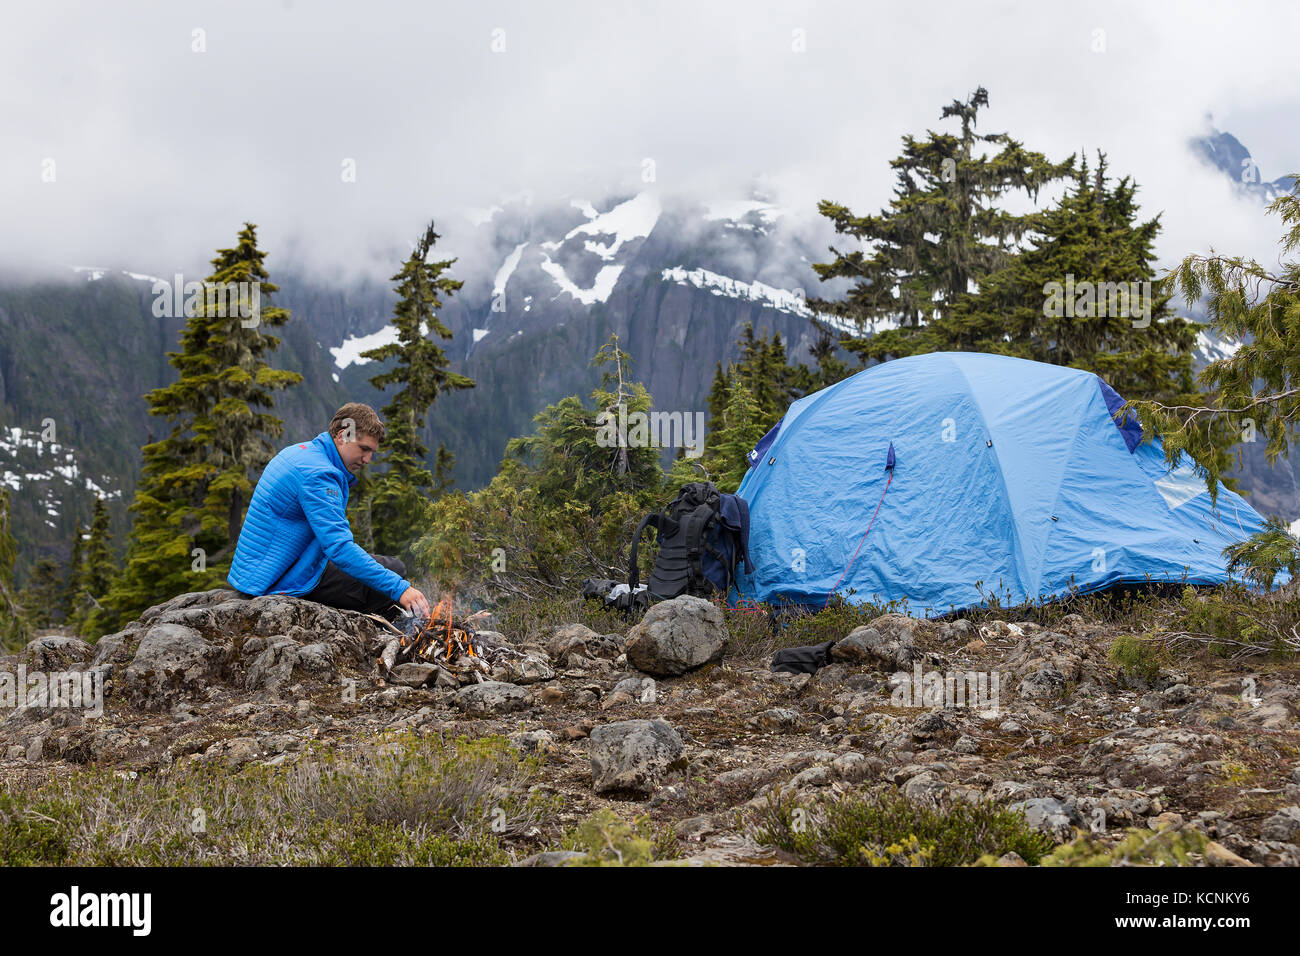 A young hikers tend to a fire while camping on Lee Plateau, Vancouver Island, British Columbia, Canada. - Stock Image